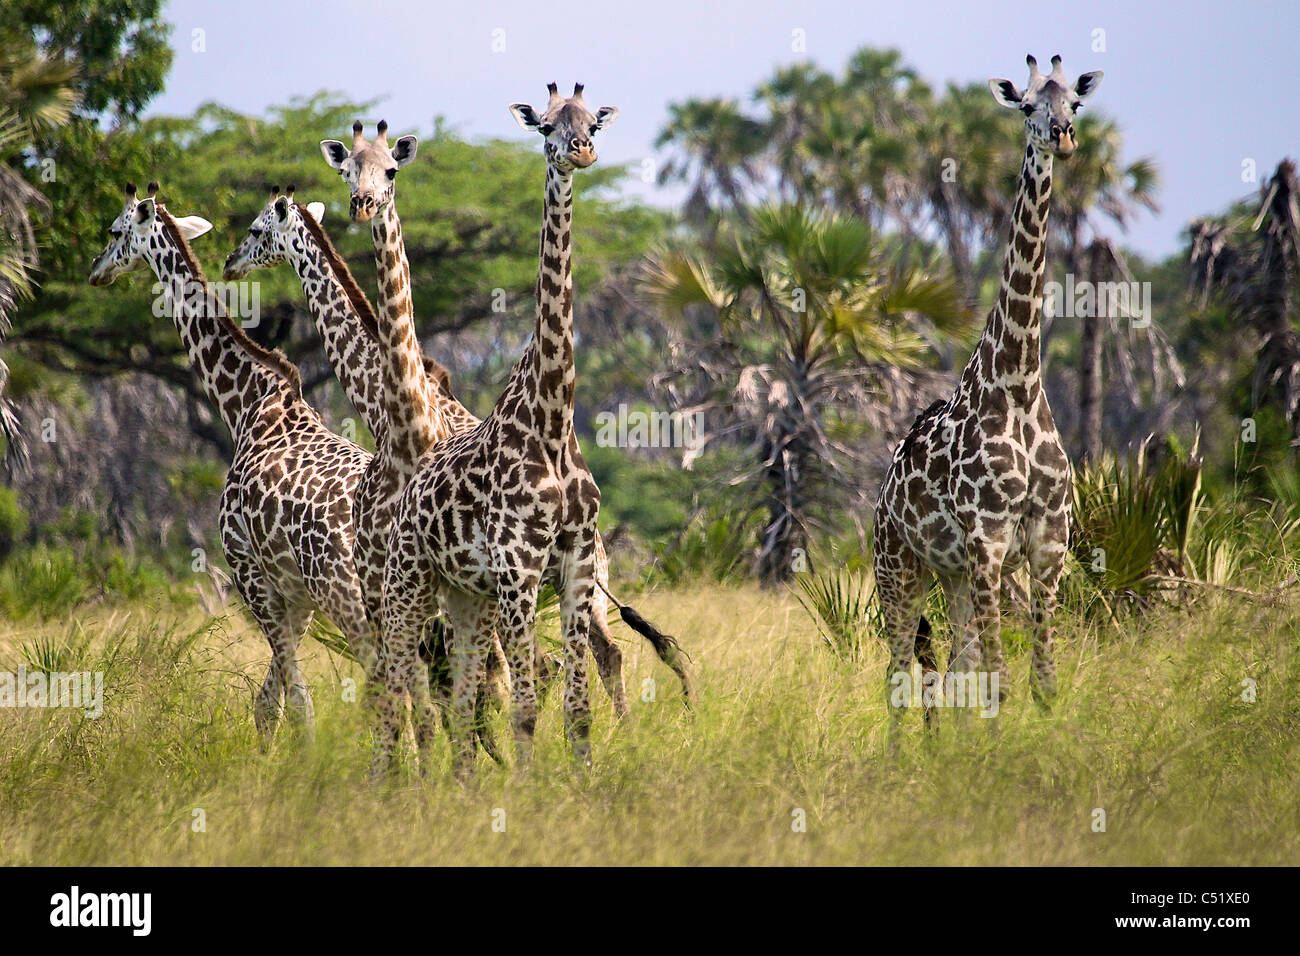 Girafe Giraffa camelopardalis Saadani Afrique Tanzanie Photo Stock